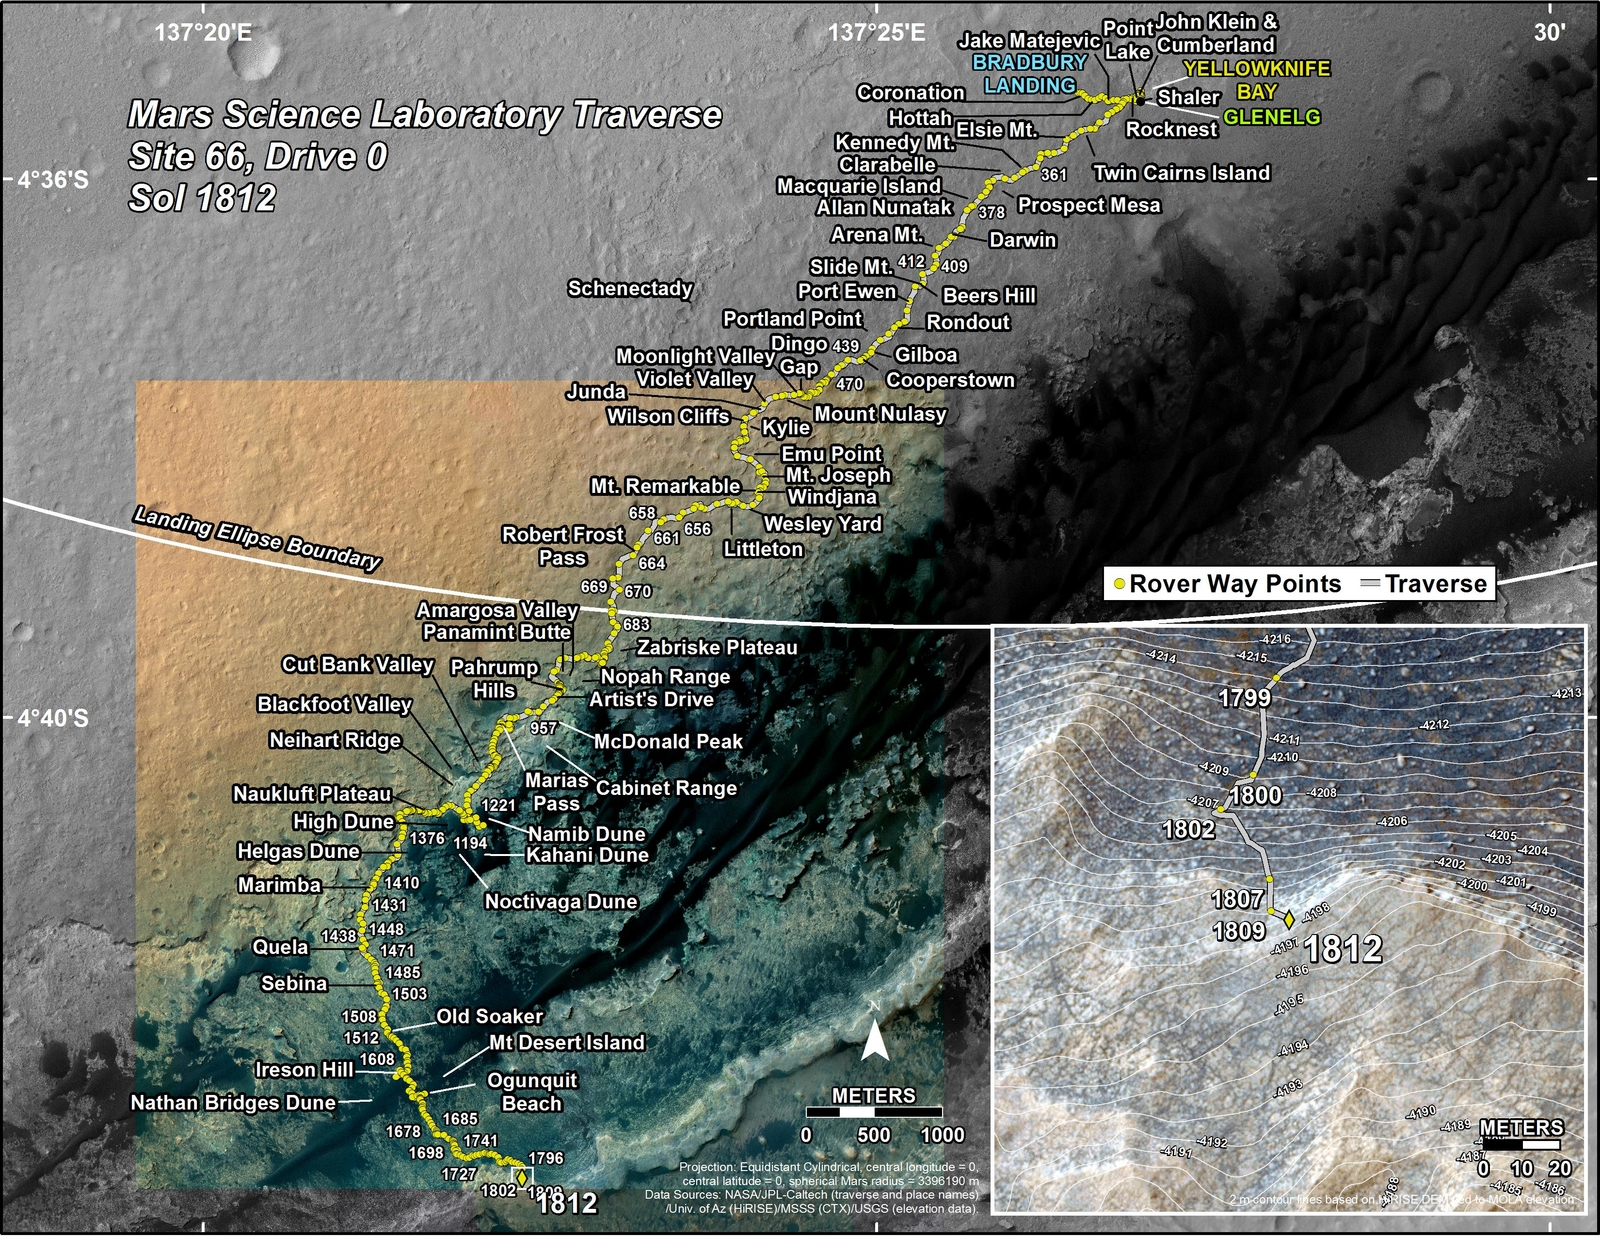 This map shows the route driven by NASA's Mars rover Curiosity through the 1812 Martian day, or sol, of the rover's mission on Mars (September 11, 2017).